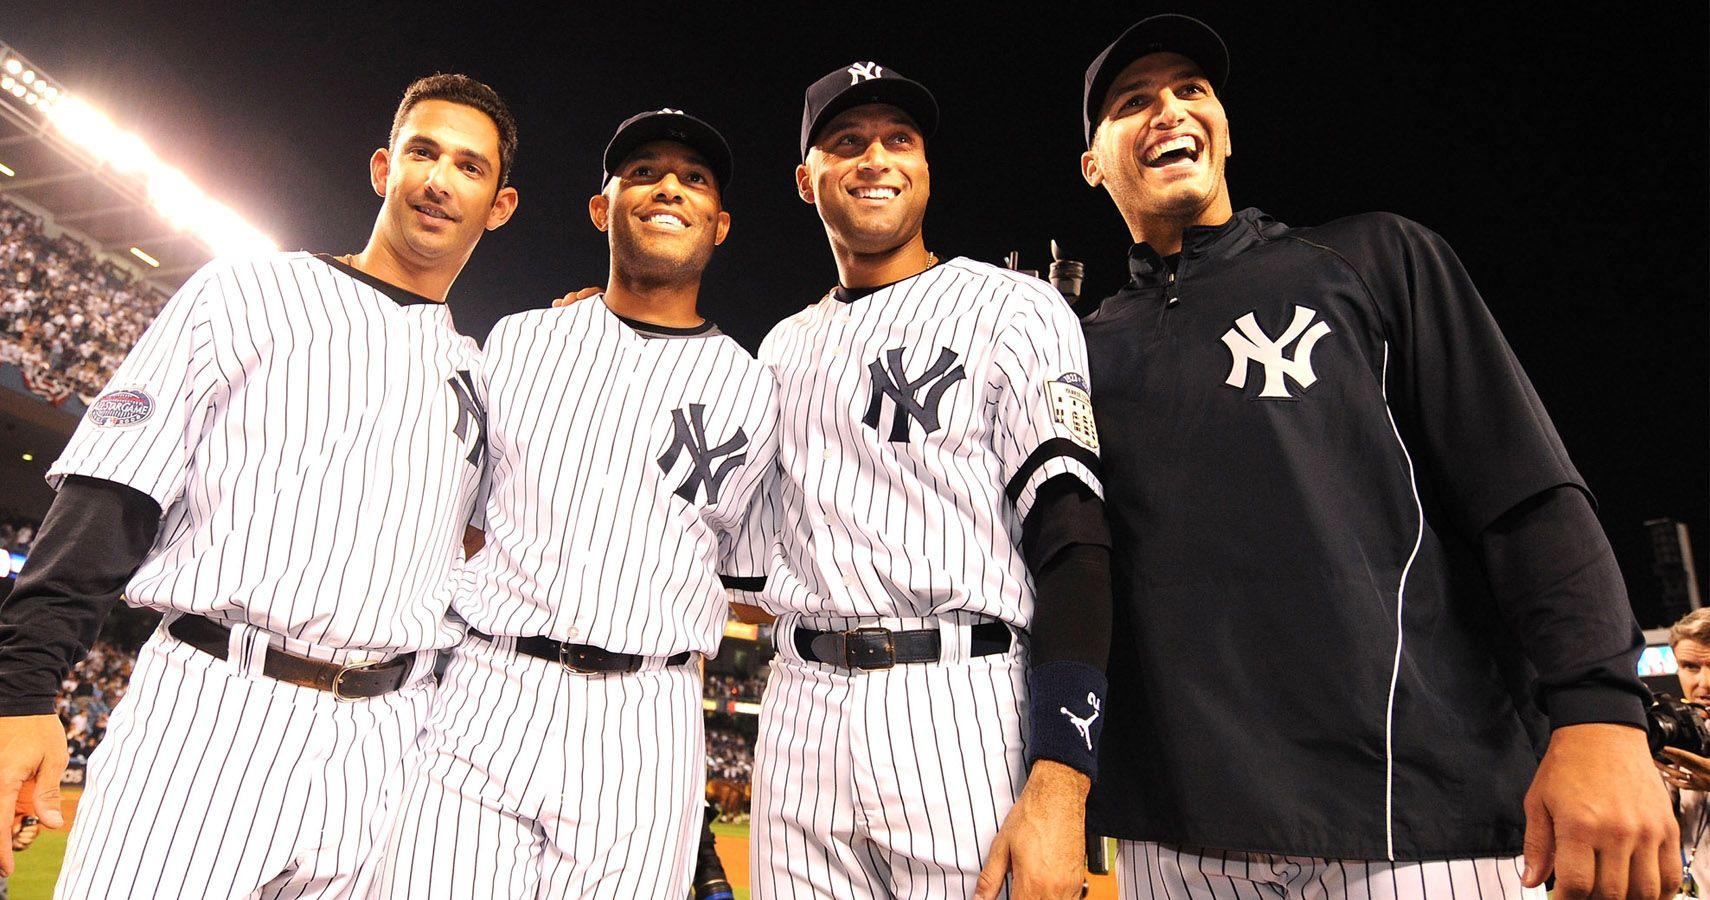 Members Of The Legendary 1998 New York Yankees: Where Are They Now?